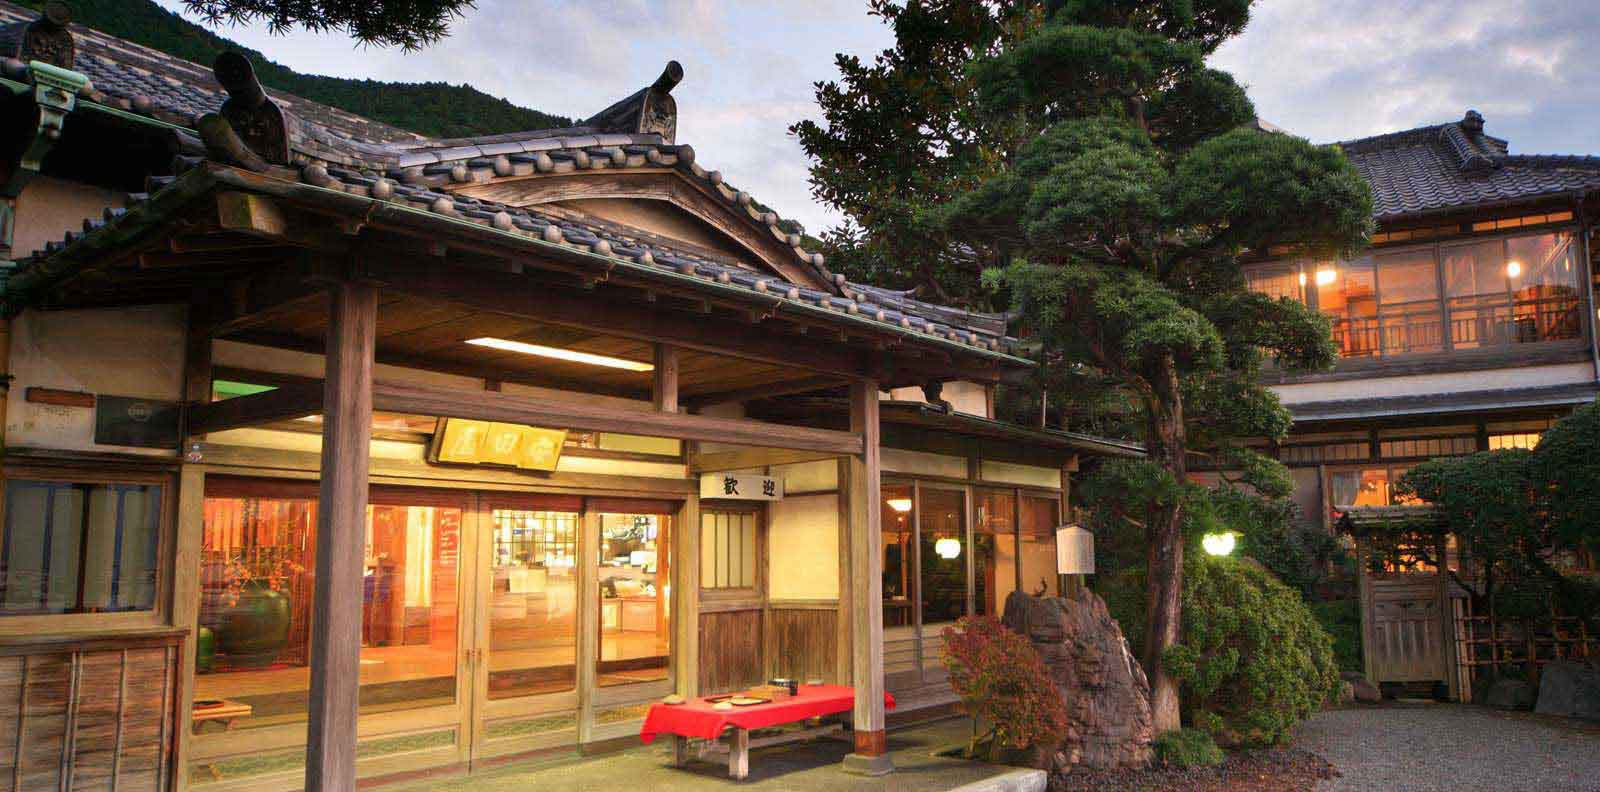 10 historical Japanese inns, loved by great writers, royalty and political figures